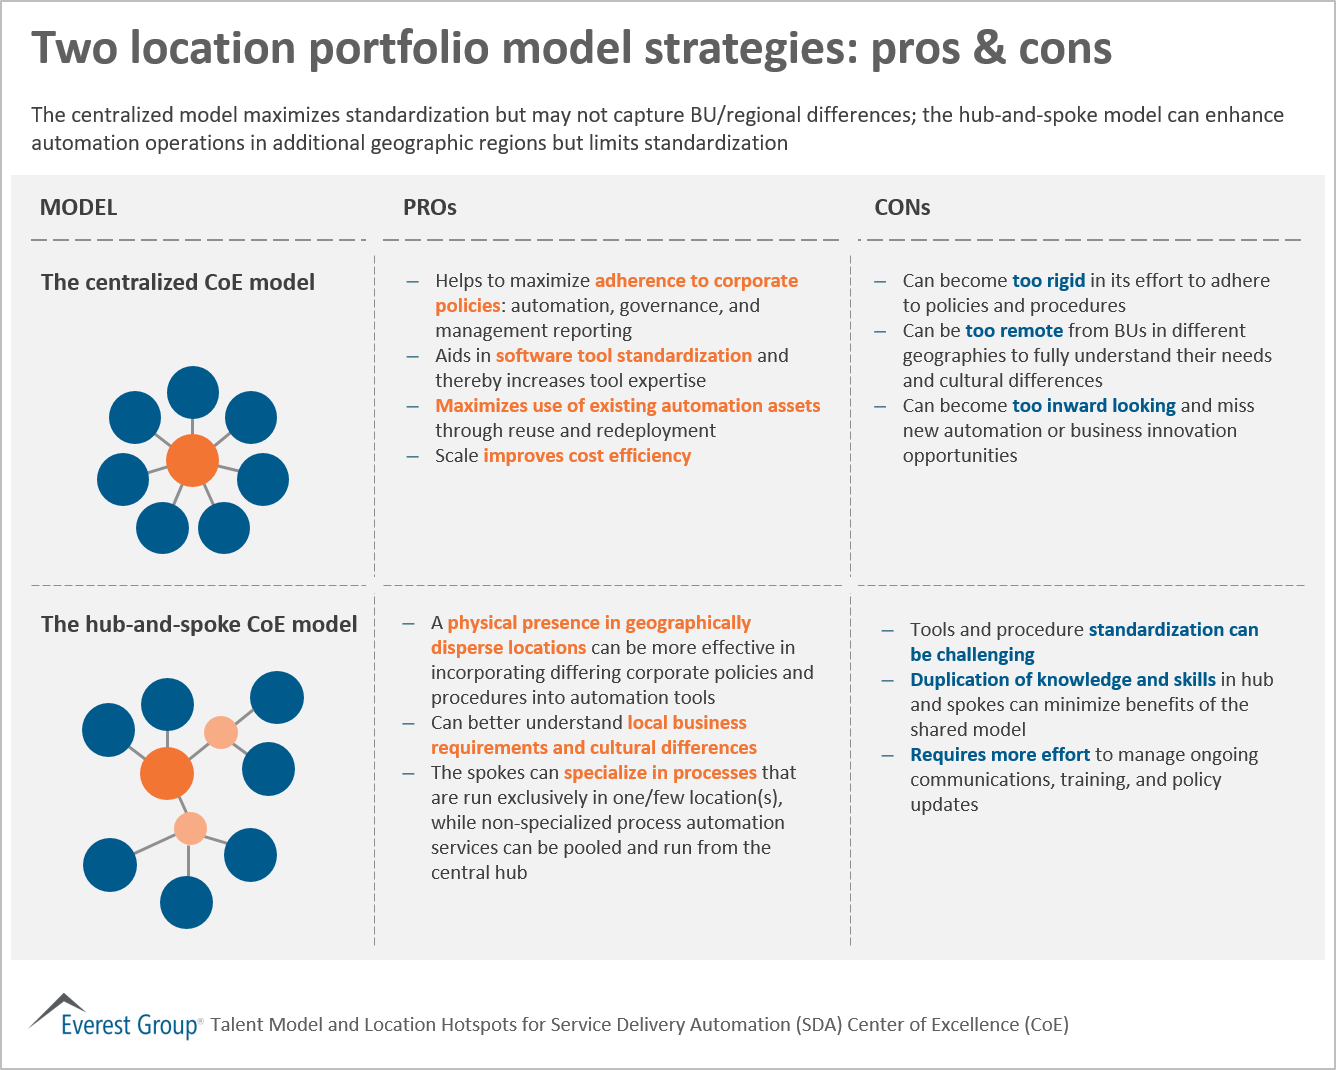 Two Location Portfolio Model Strategies: Pros & Cons